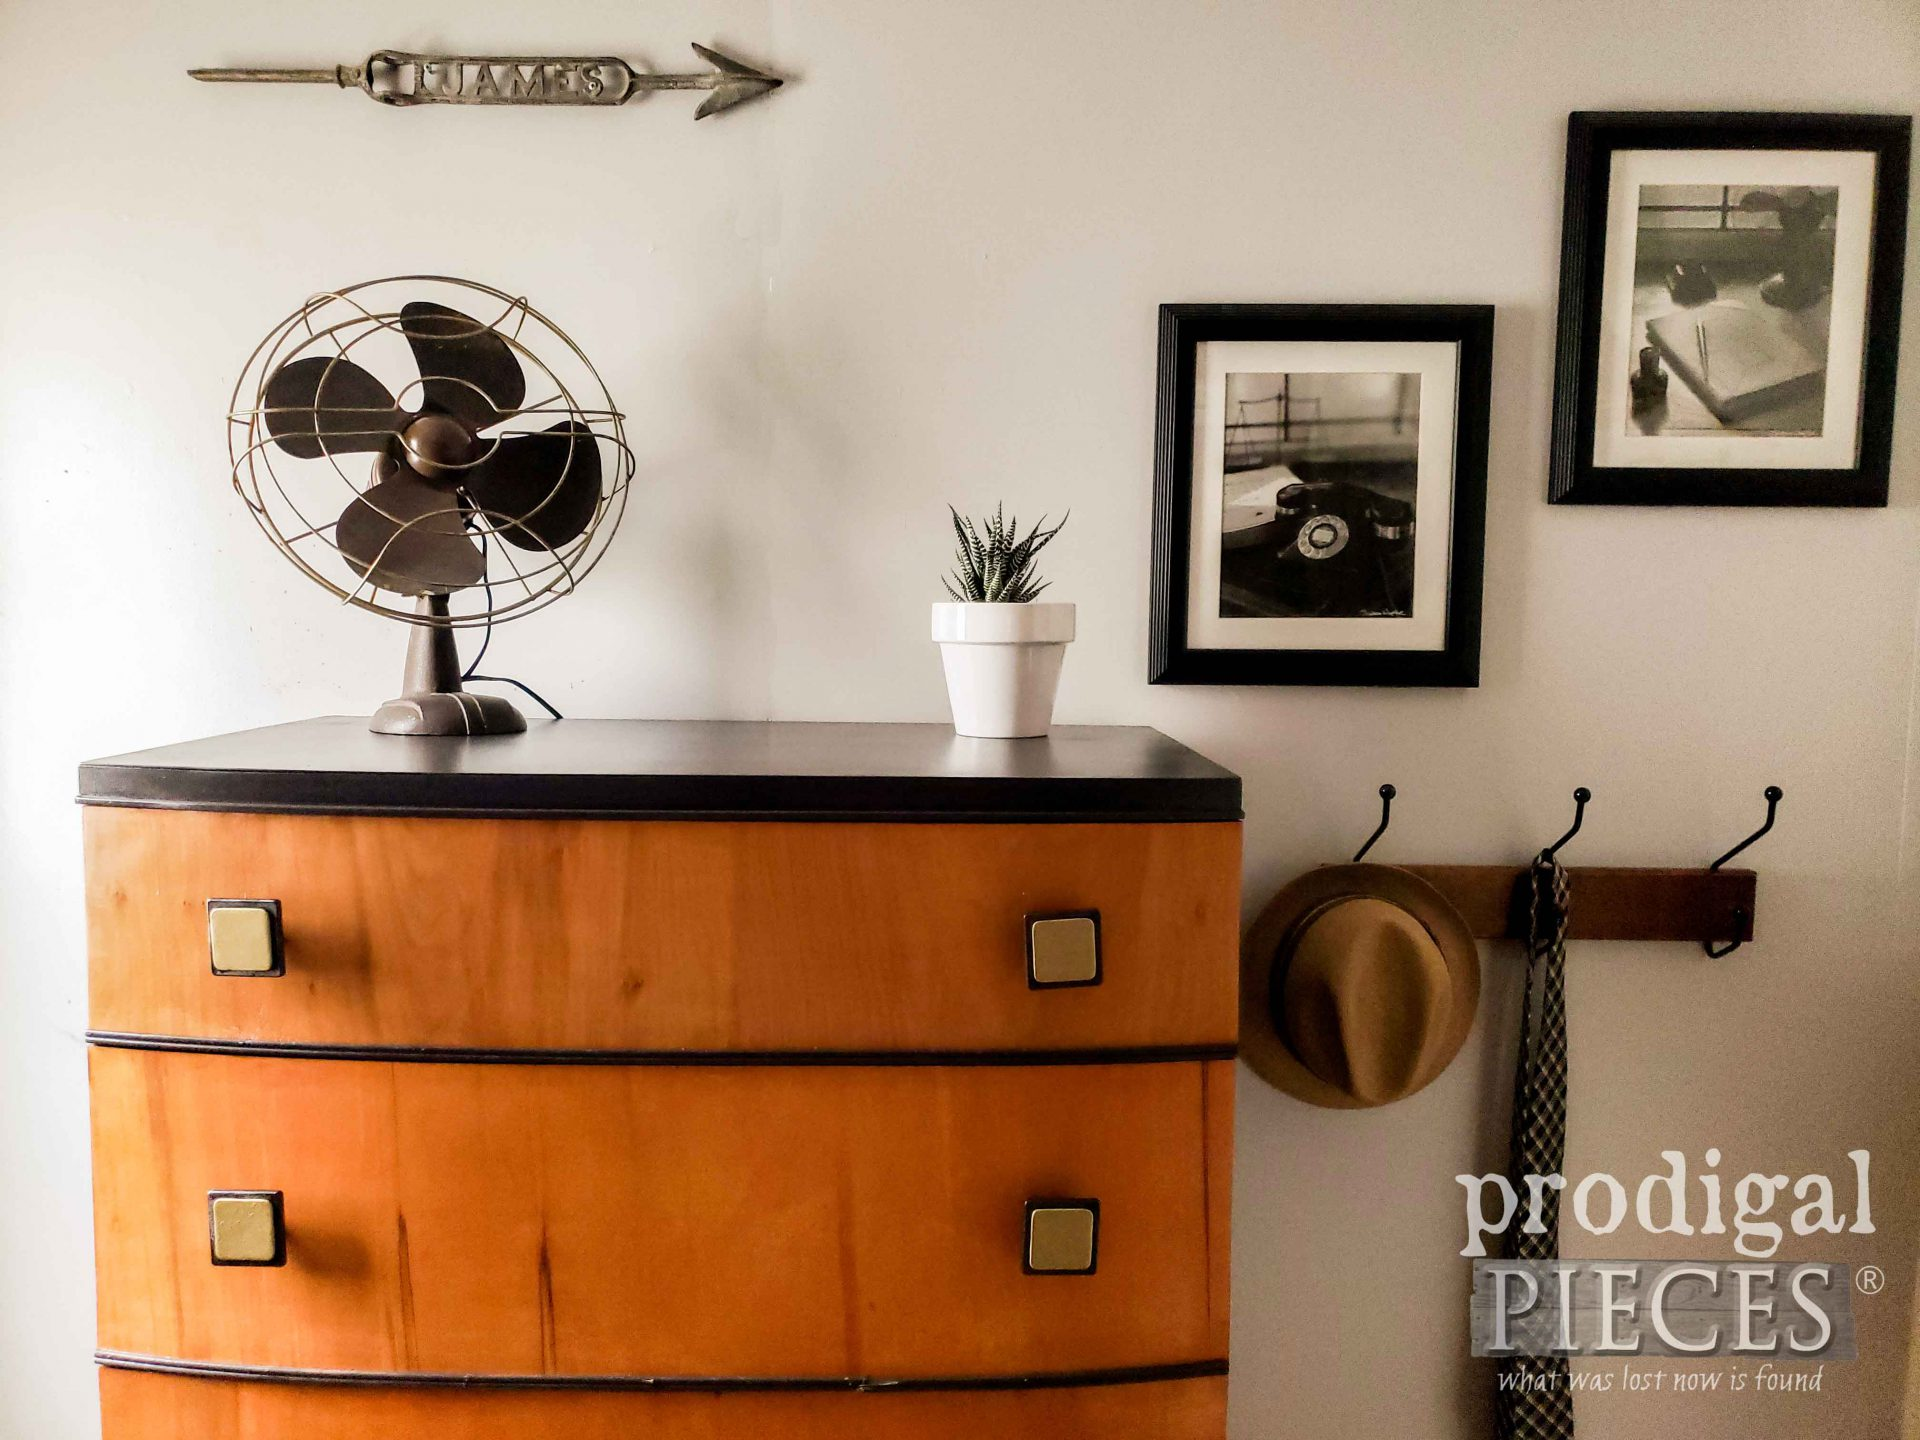 Vintage Art Deco Chest Top with Vignette by Larissa of Prodigal Pieces | prodigalpieces.com #prodigalpieces #furniture #vintage #home